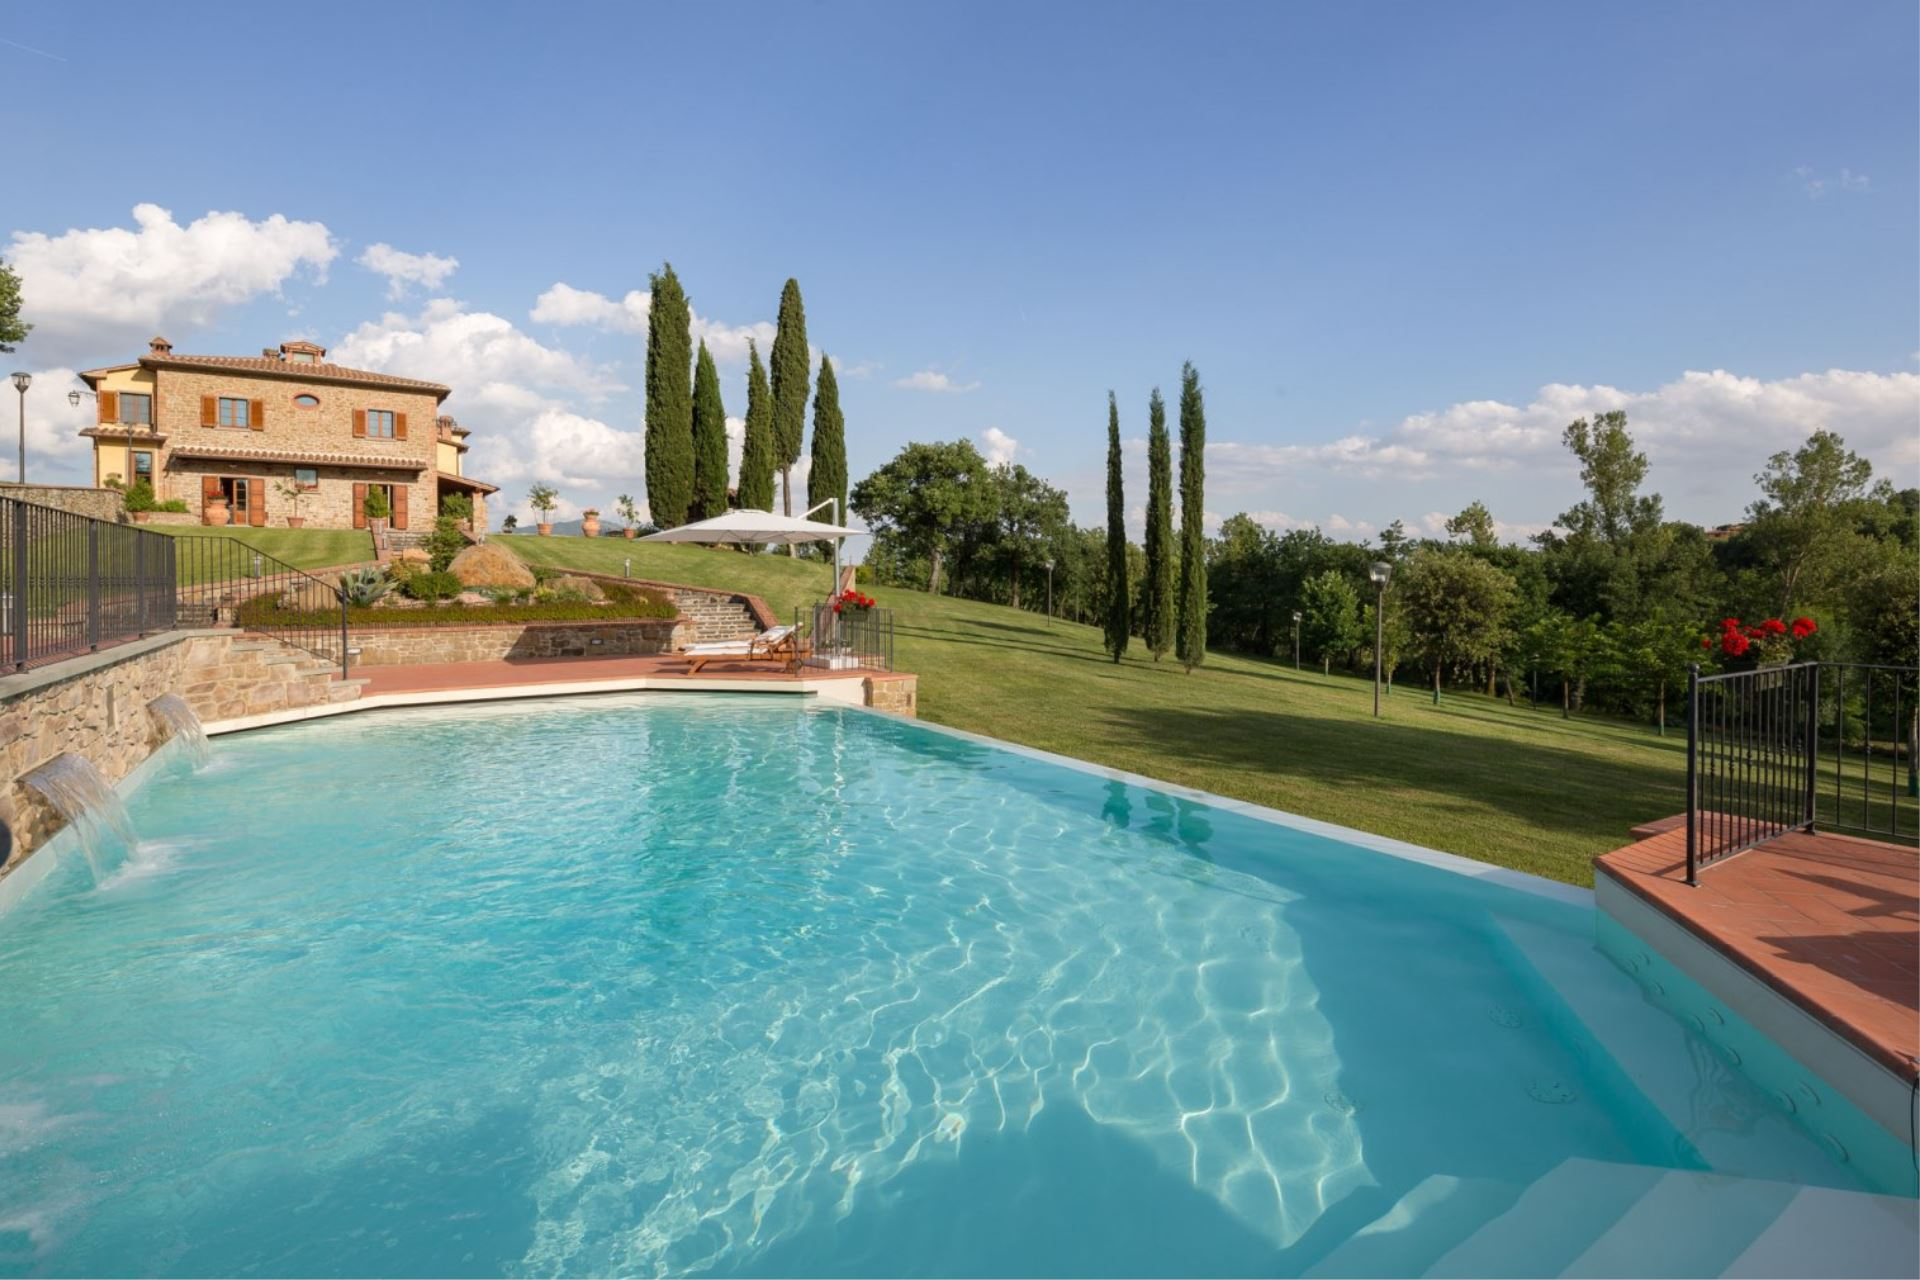 APPARTEMENTS AVEC PISCINE EMERALD AREZZO TOSCANA